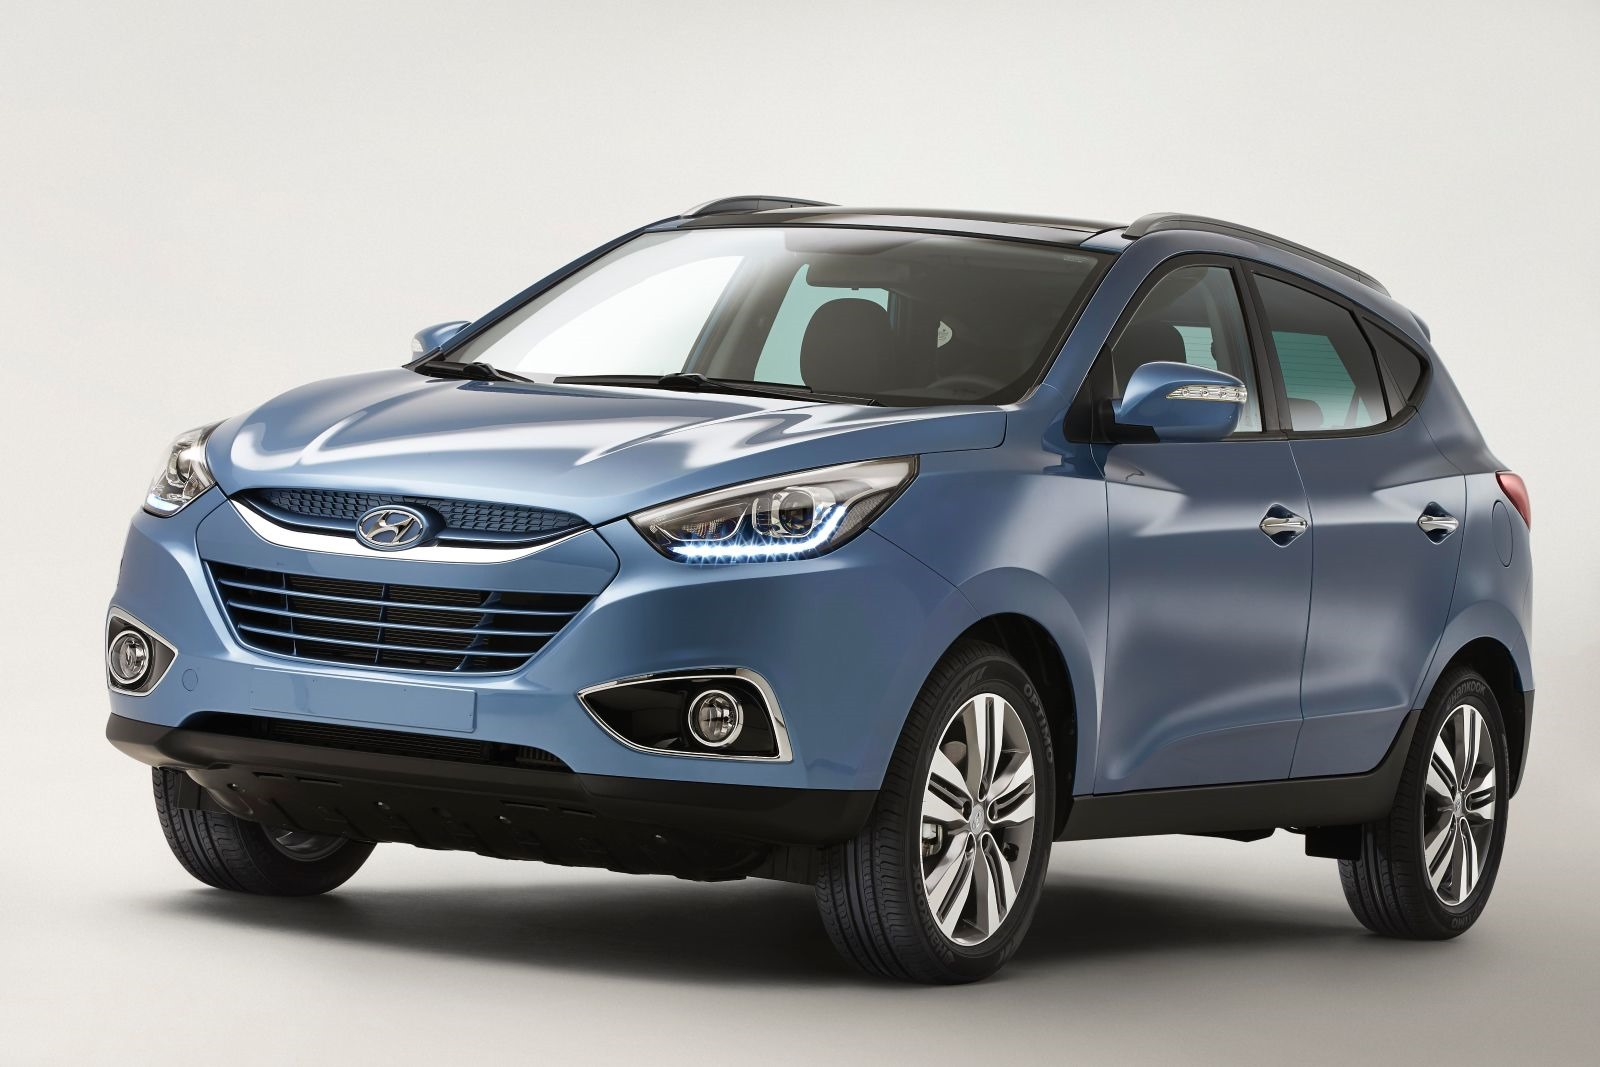 hyundai ix35 facelift first photo autoevolution. Black Bedroom Furniture Sets. Home Design Ideas